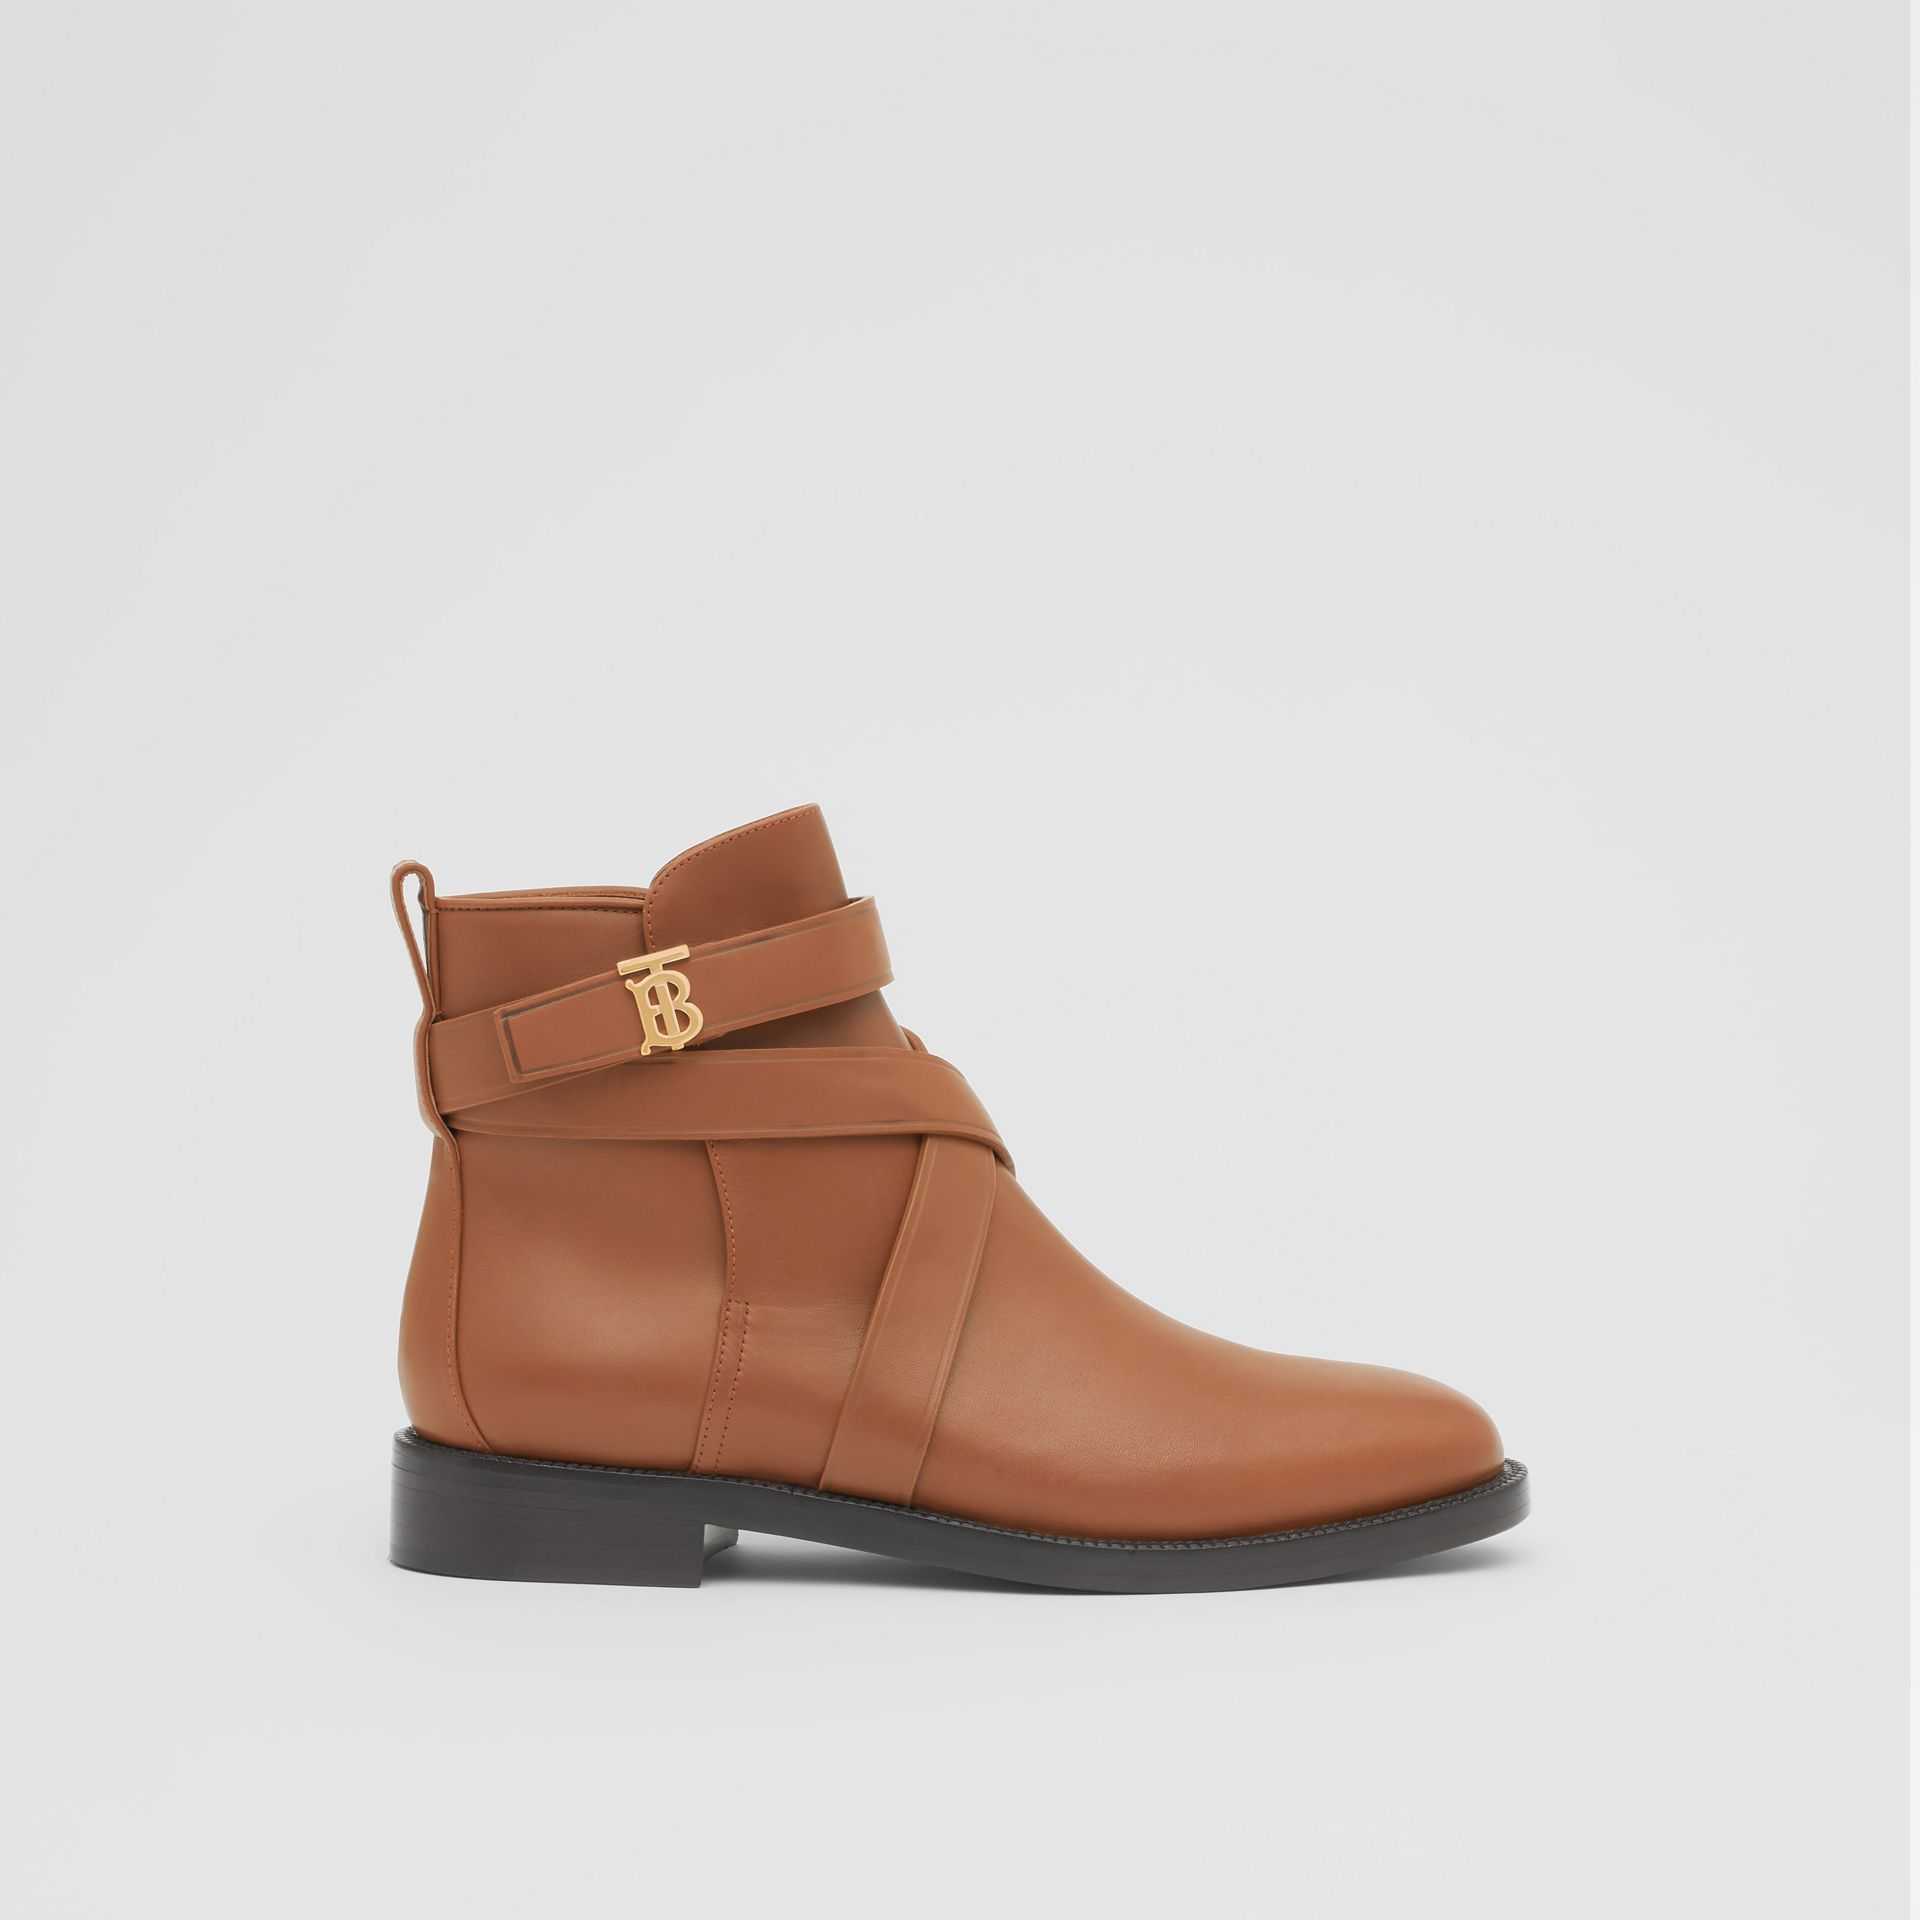 Monogram Motif Leather Ankle Boots in Tan - Women | Burberry United Kingdom - gallery image 5